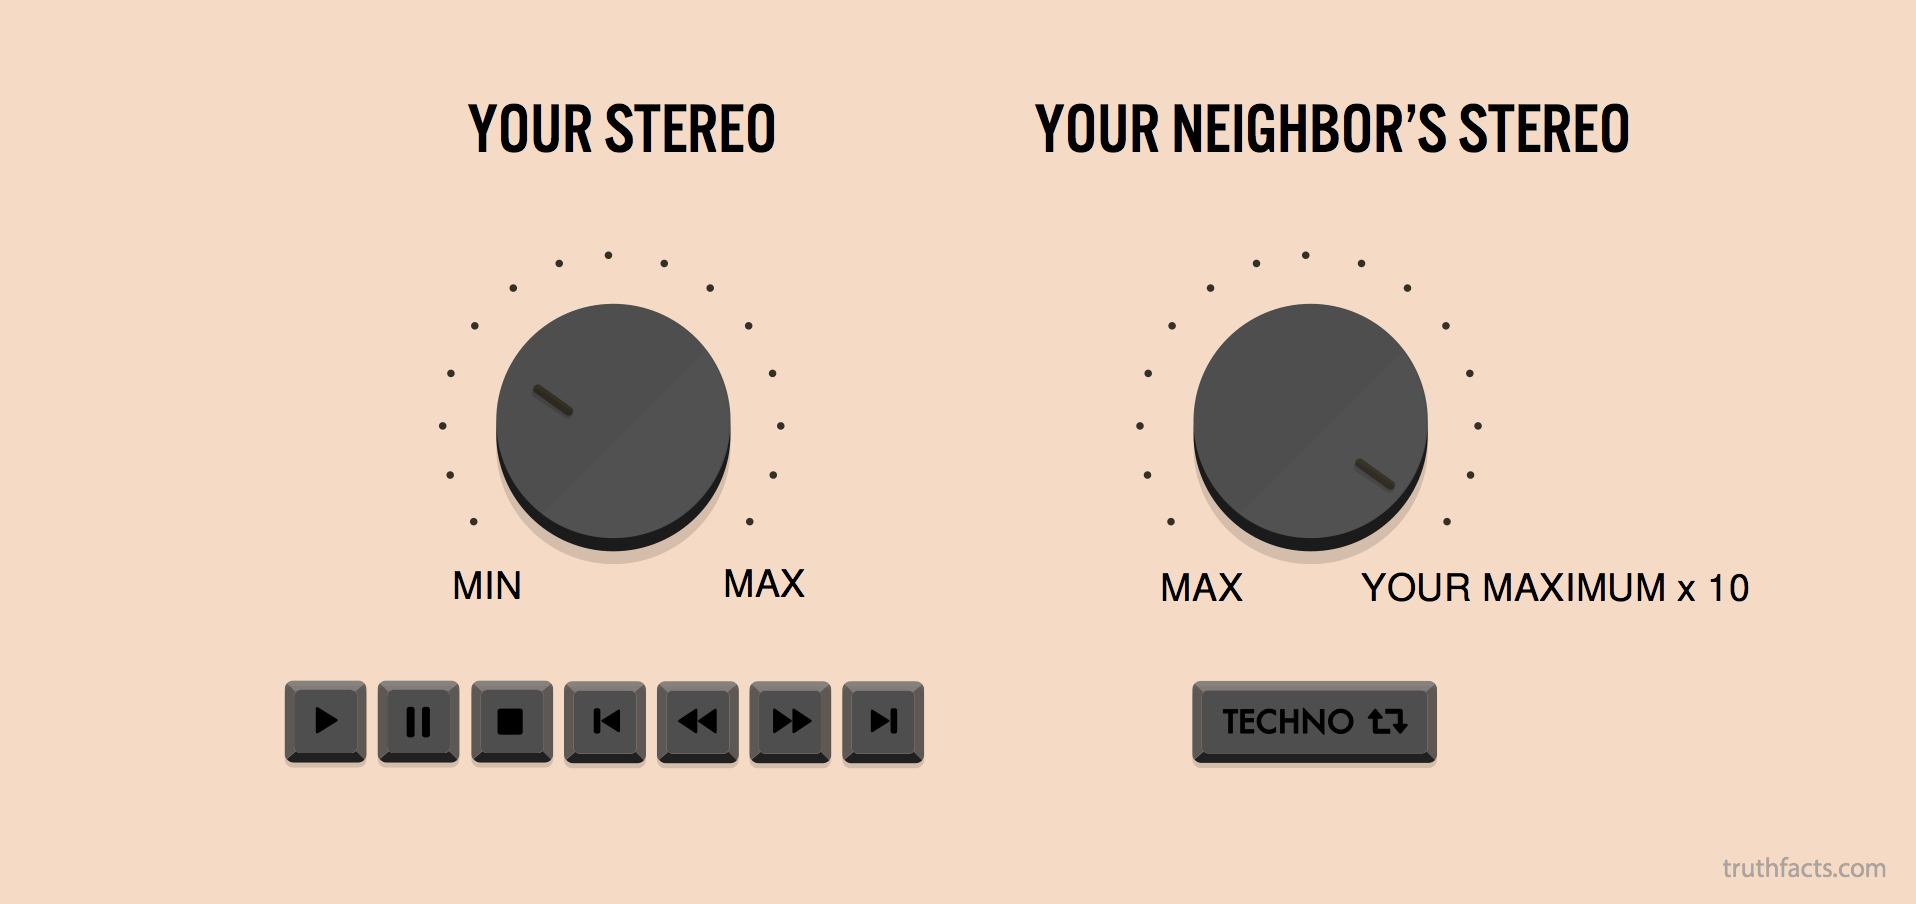 your stereo vs. your neighbor's stereo